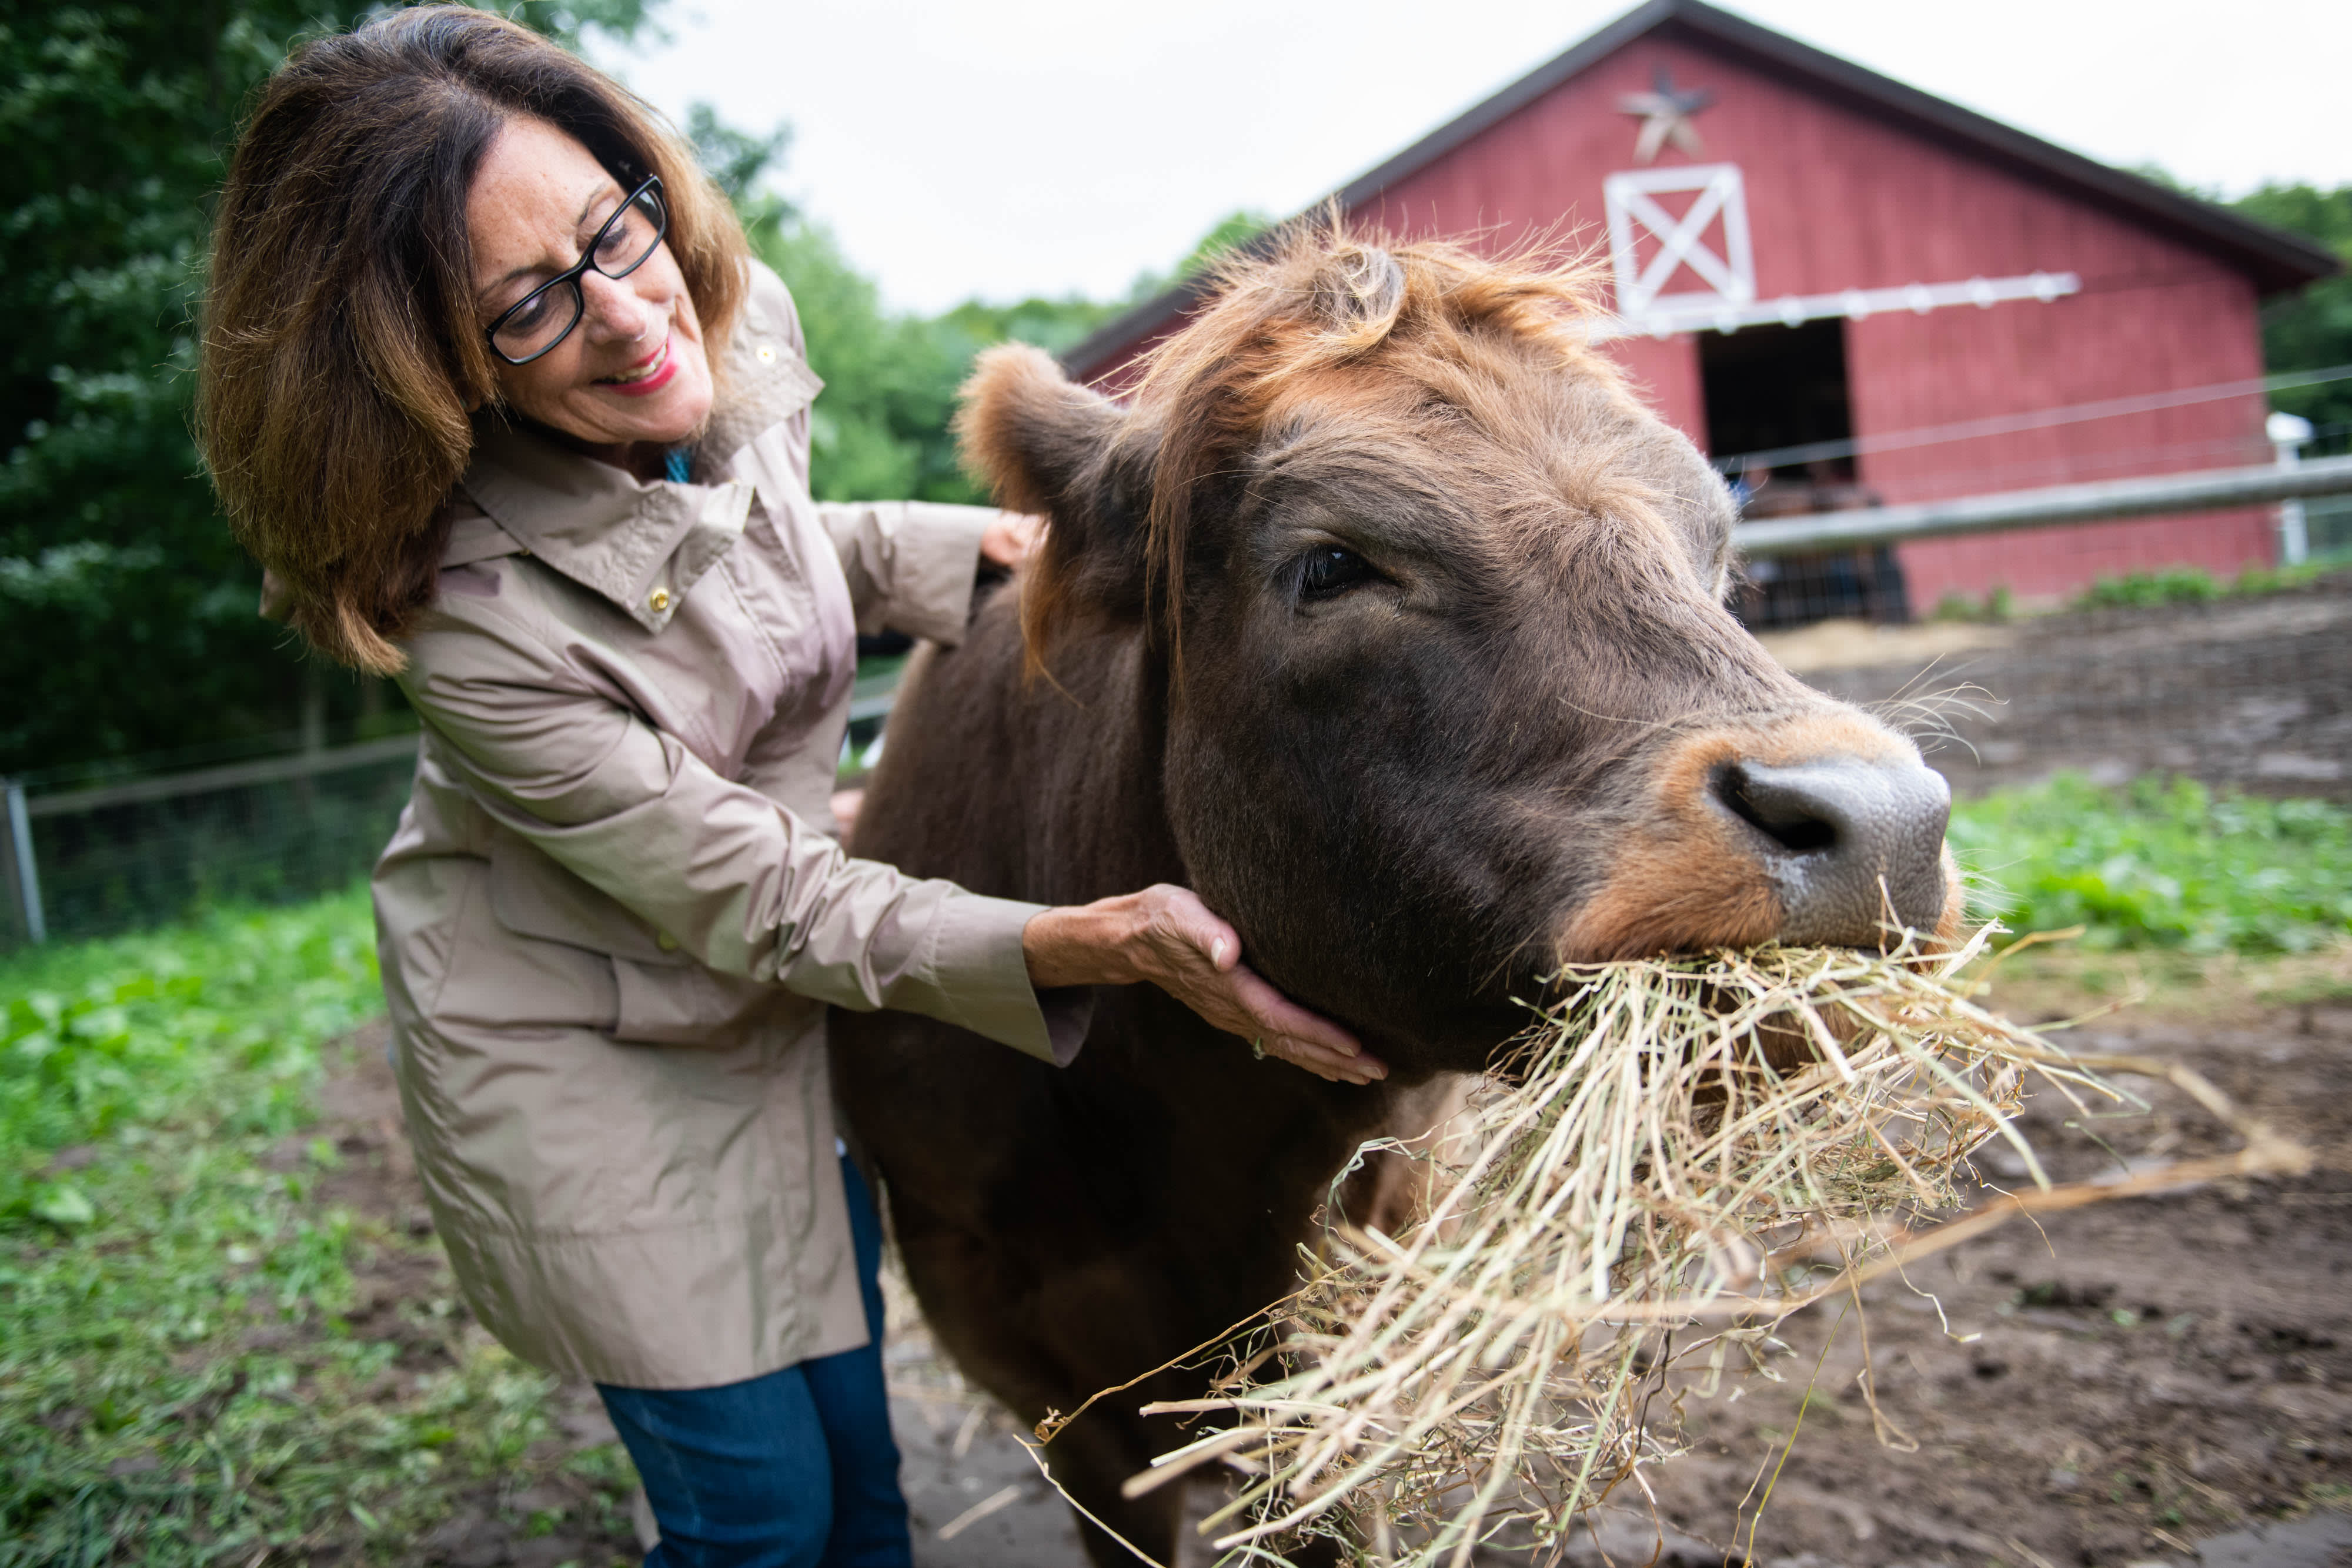 At This New York Farm You Can Cuddle A Therapy Cow For 75